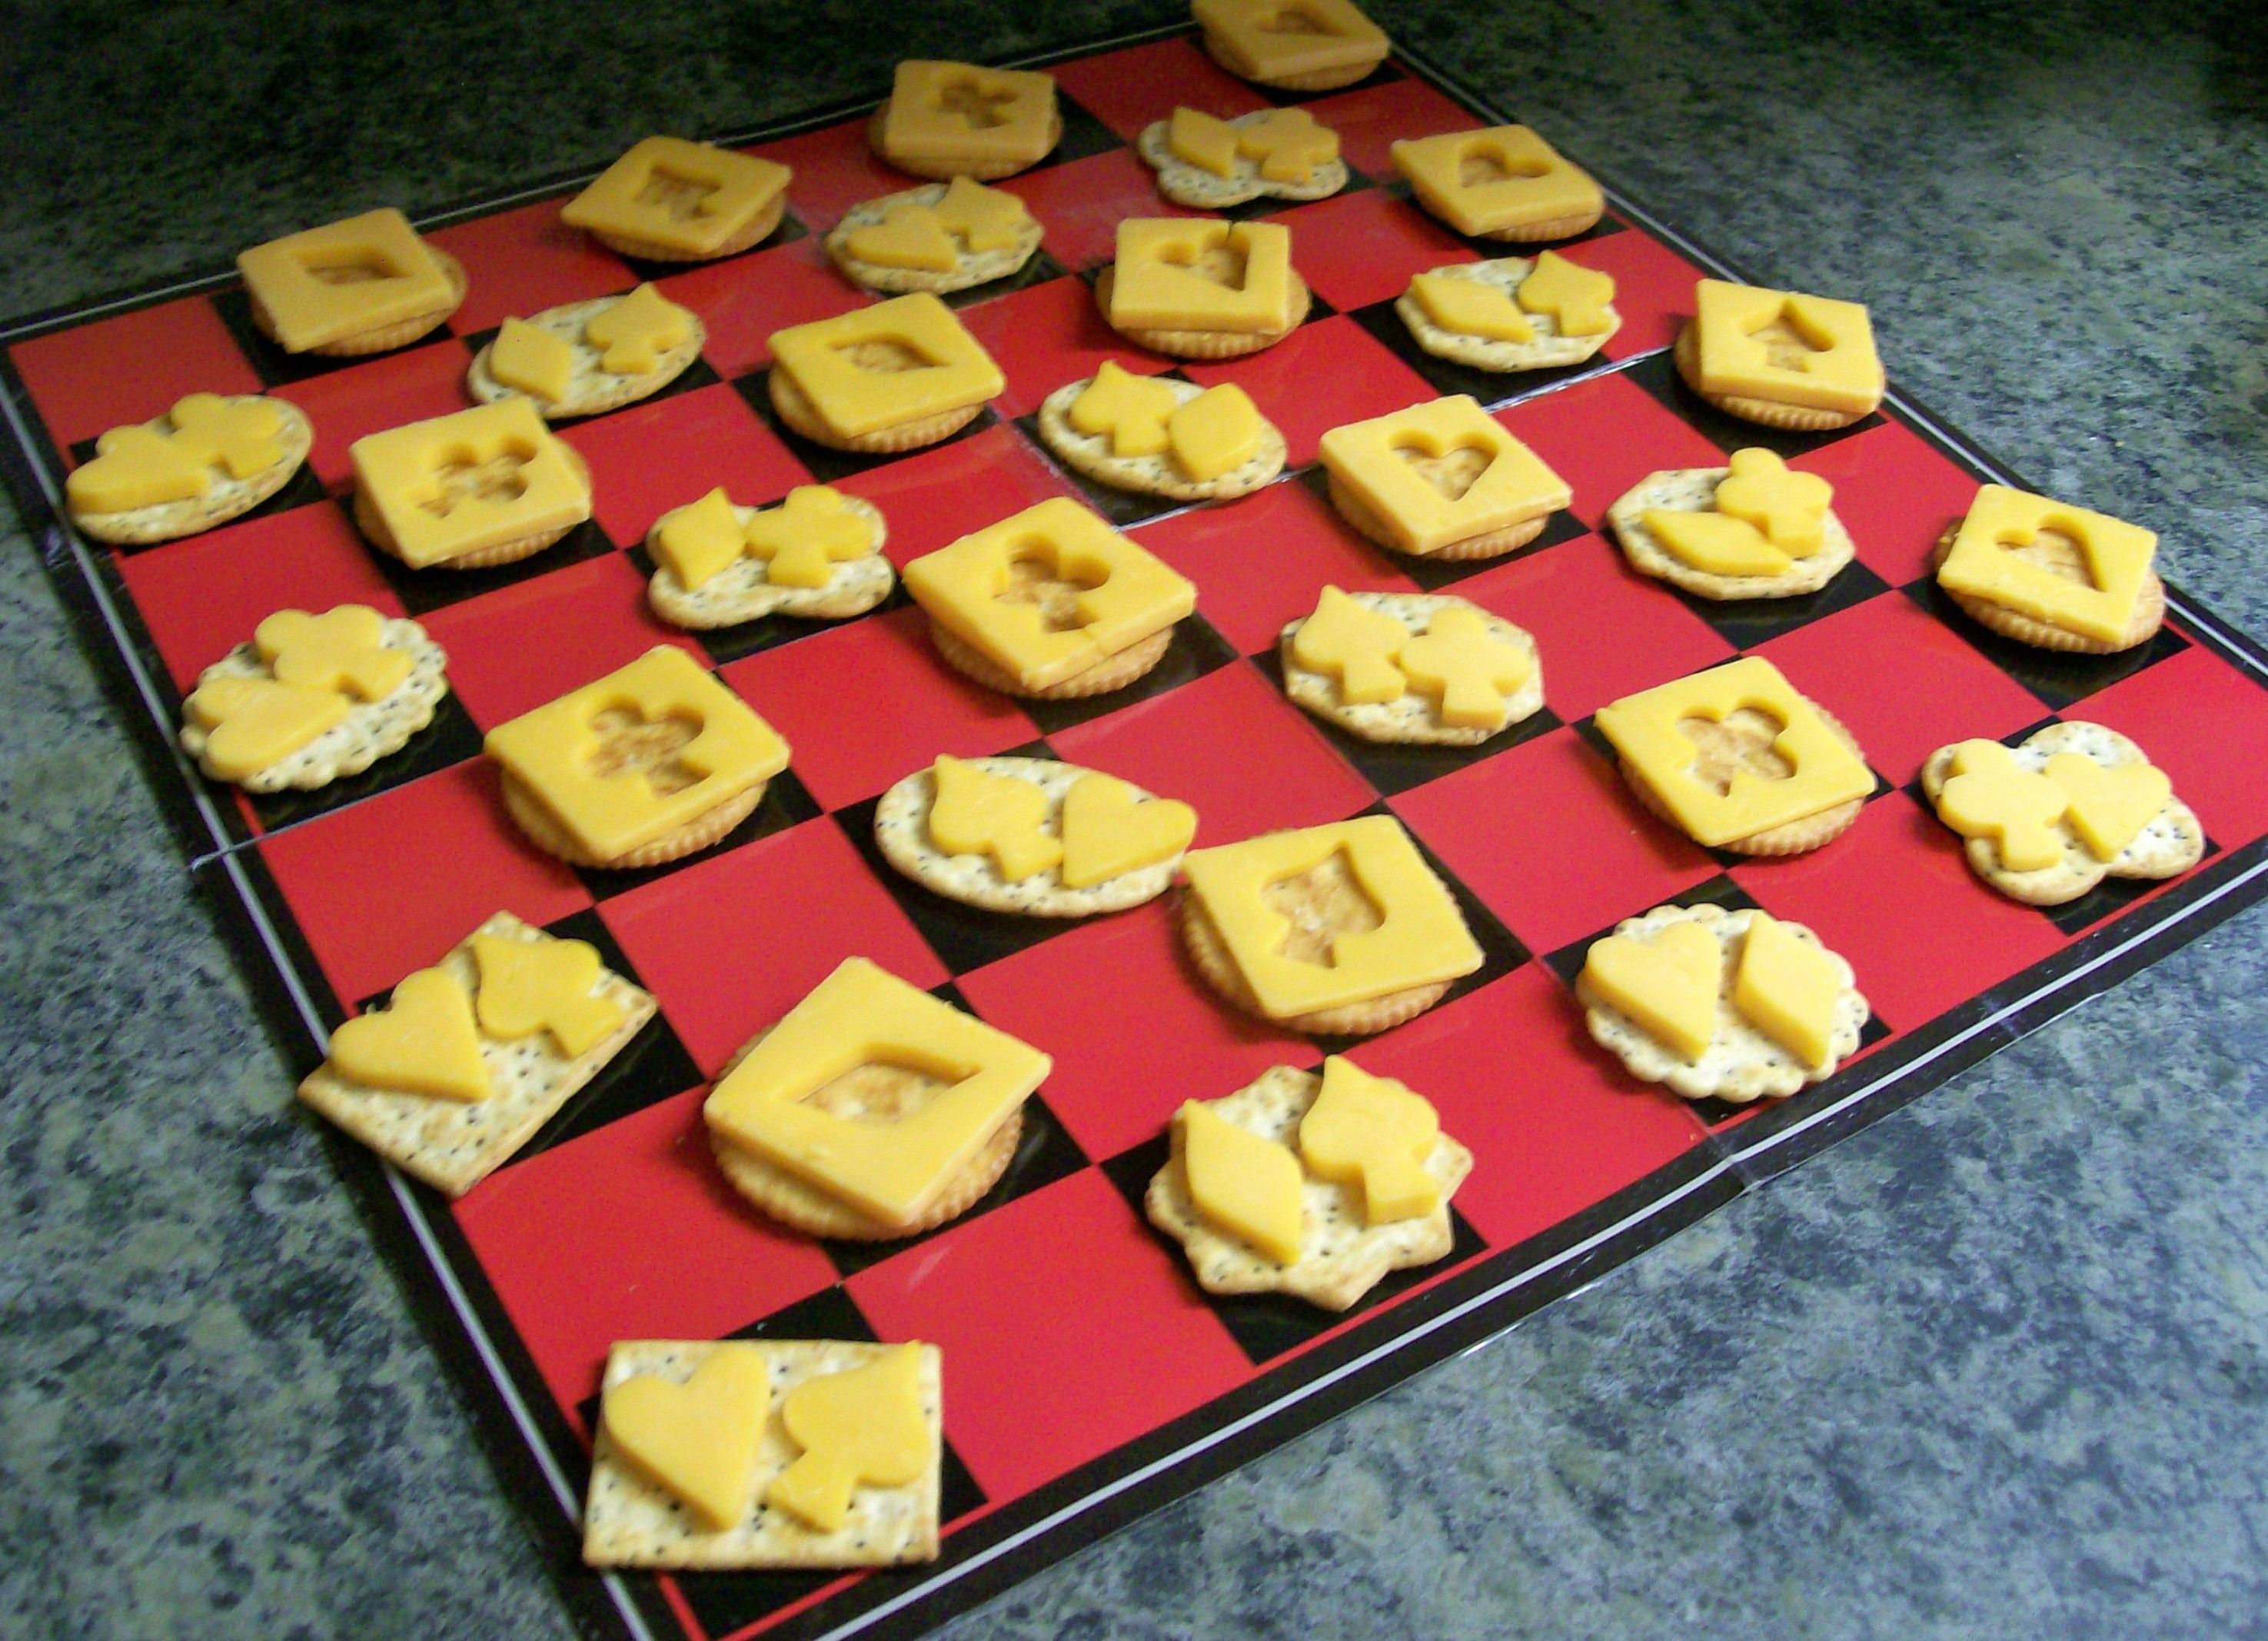 game night recipe cheese crackers that suit Game night